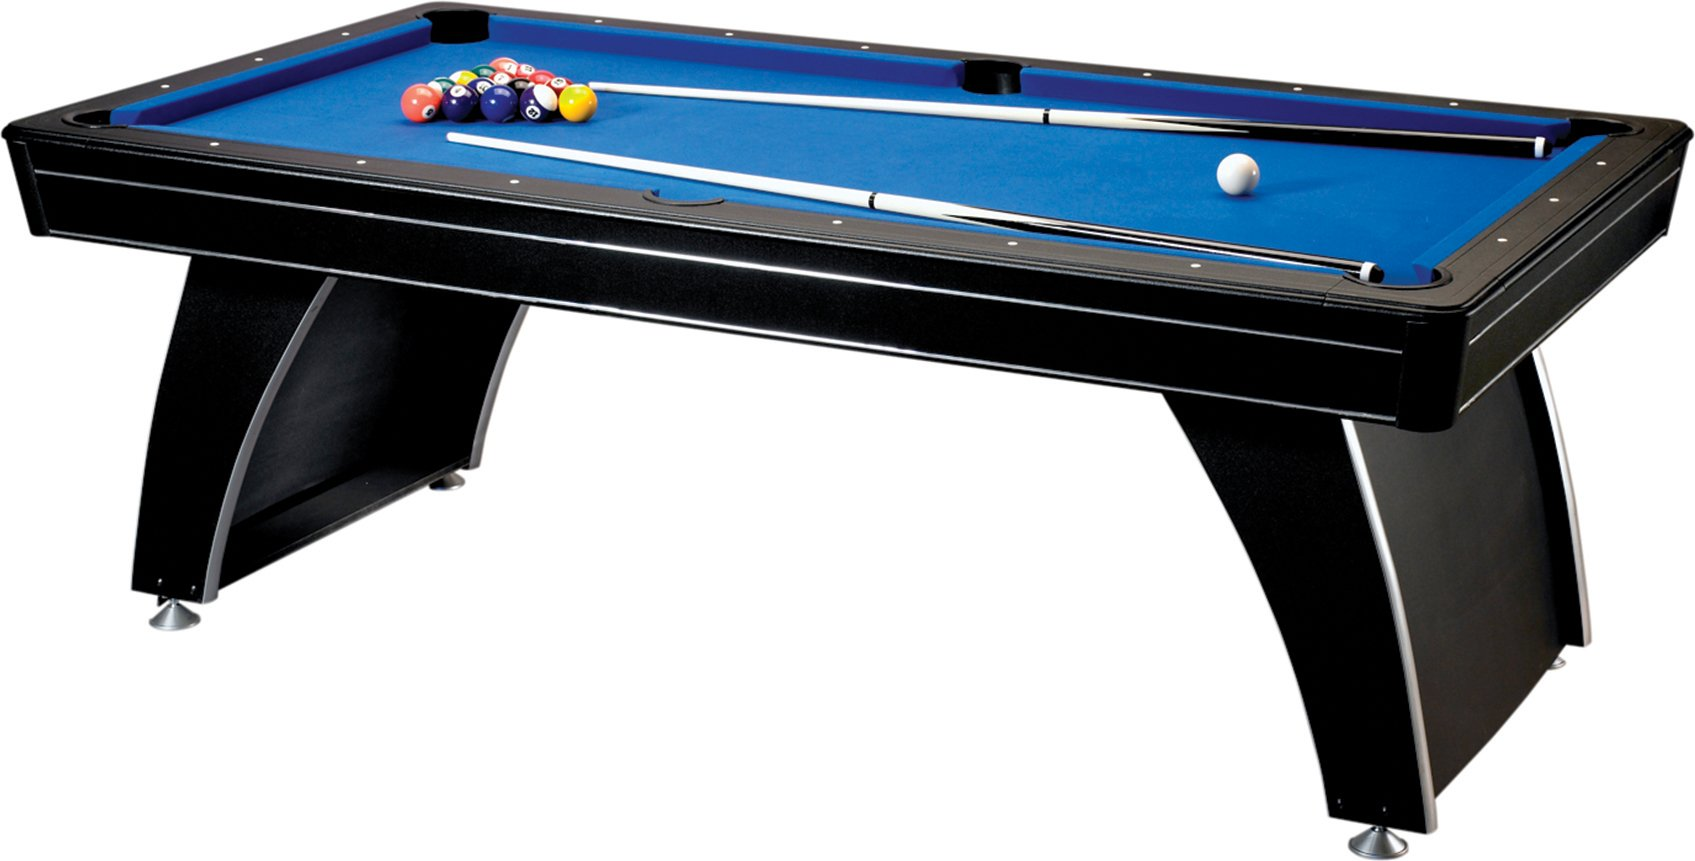 Fat Cat Phoenix MMXI 3-in-1, 7-Foot Game Table (Billiards, Slide Hockey and Table Tennis) by Fat Cat by GLD Products